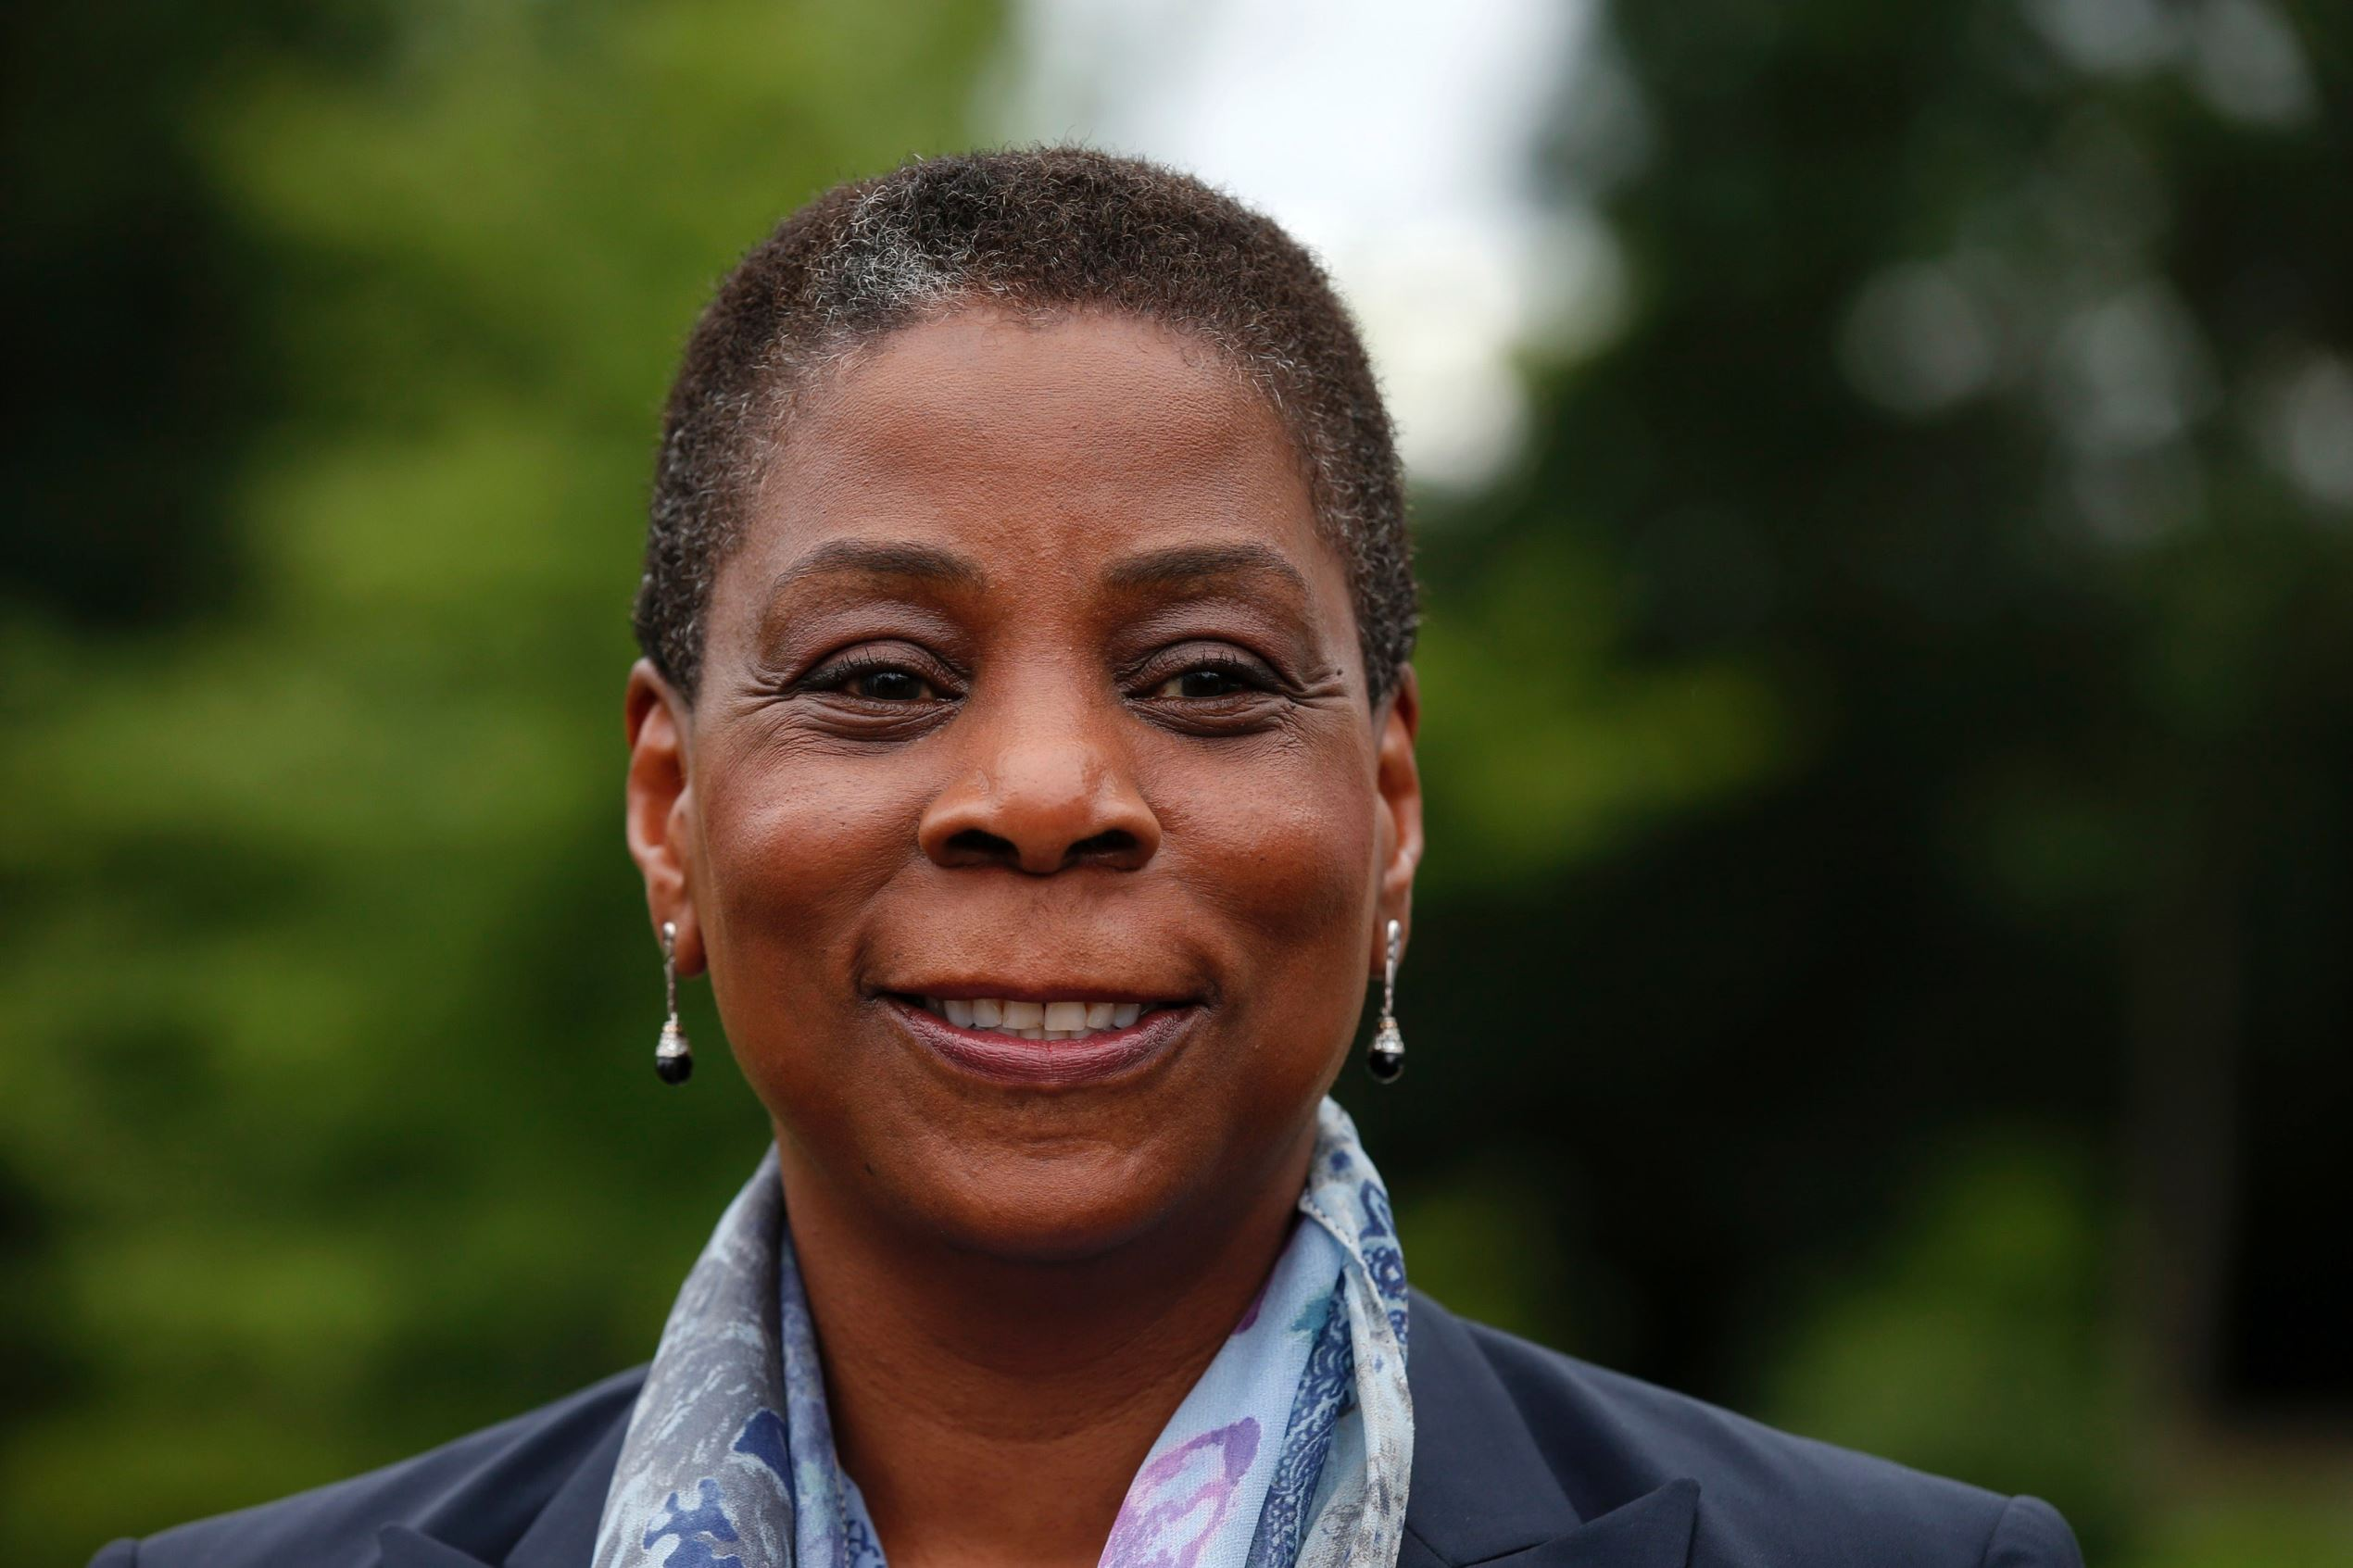 Ursula Burns, CEO of Xerox, attends the French employers' body MEDEF union summer forum in Jouy-en-Josas, France, in 2014. REUTERS/Benoit Tessier (FRANCE - Tags: BUSINESS HEADSHOT)